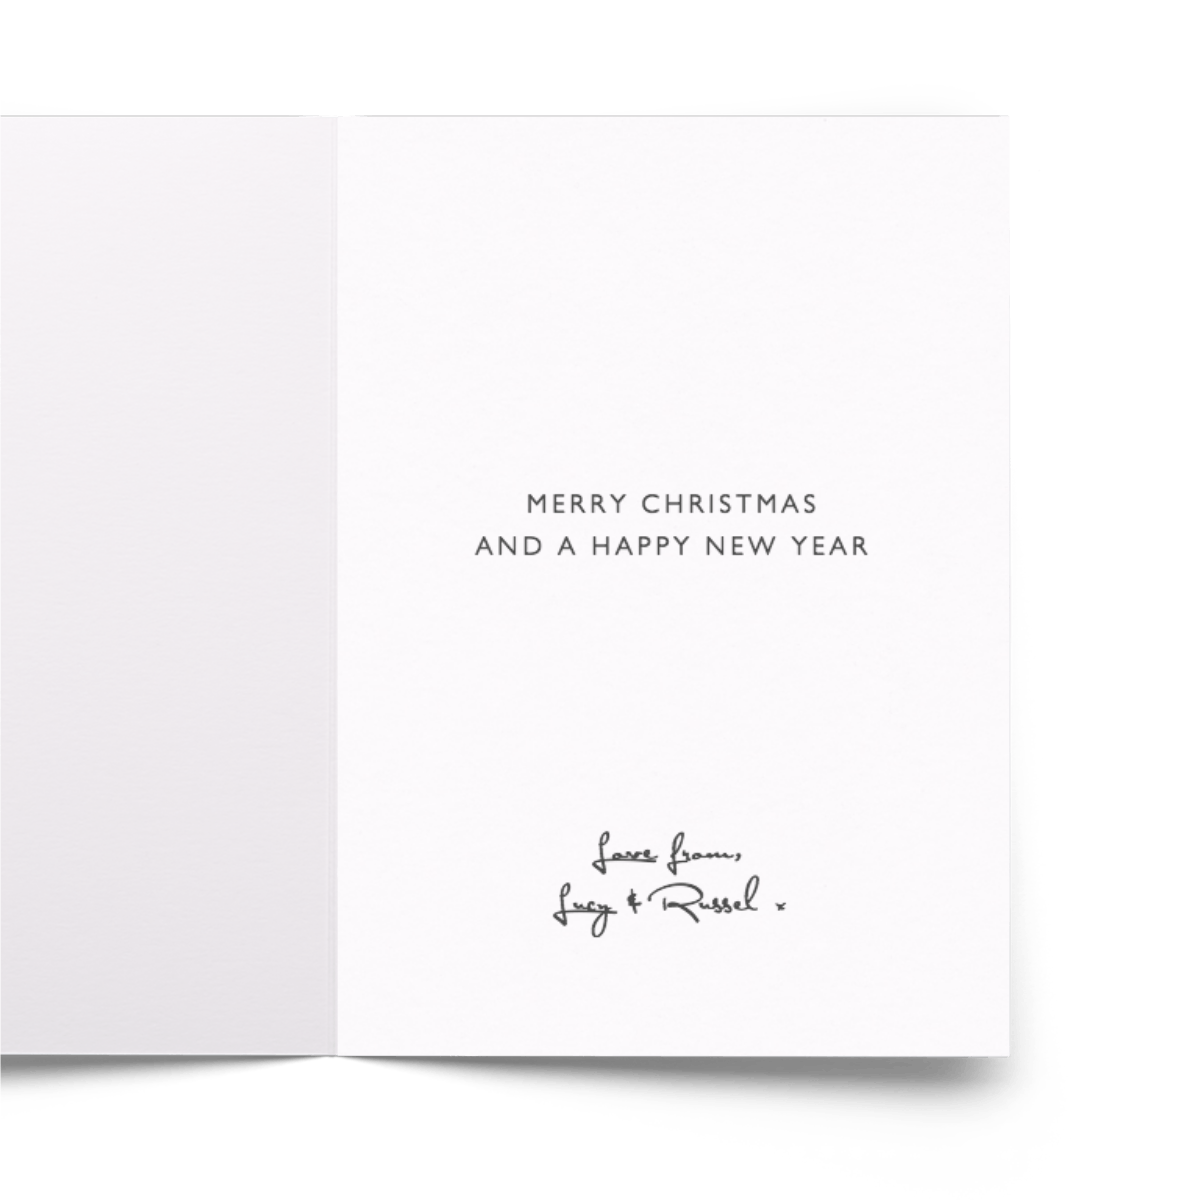 Https%3a%2f%2fwww.papier.com%2fproduct image%2f30180%2f19%2fchristmas morning 7611 inside 1509021871.png?ixlib=rb 1.1